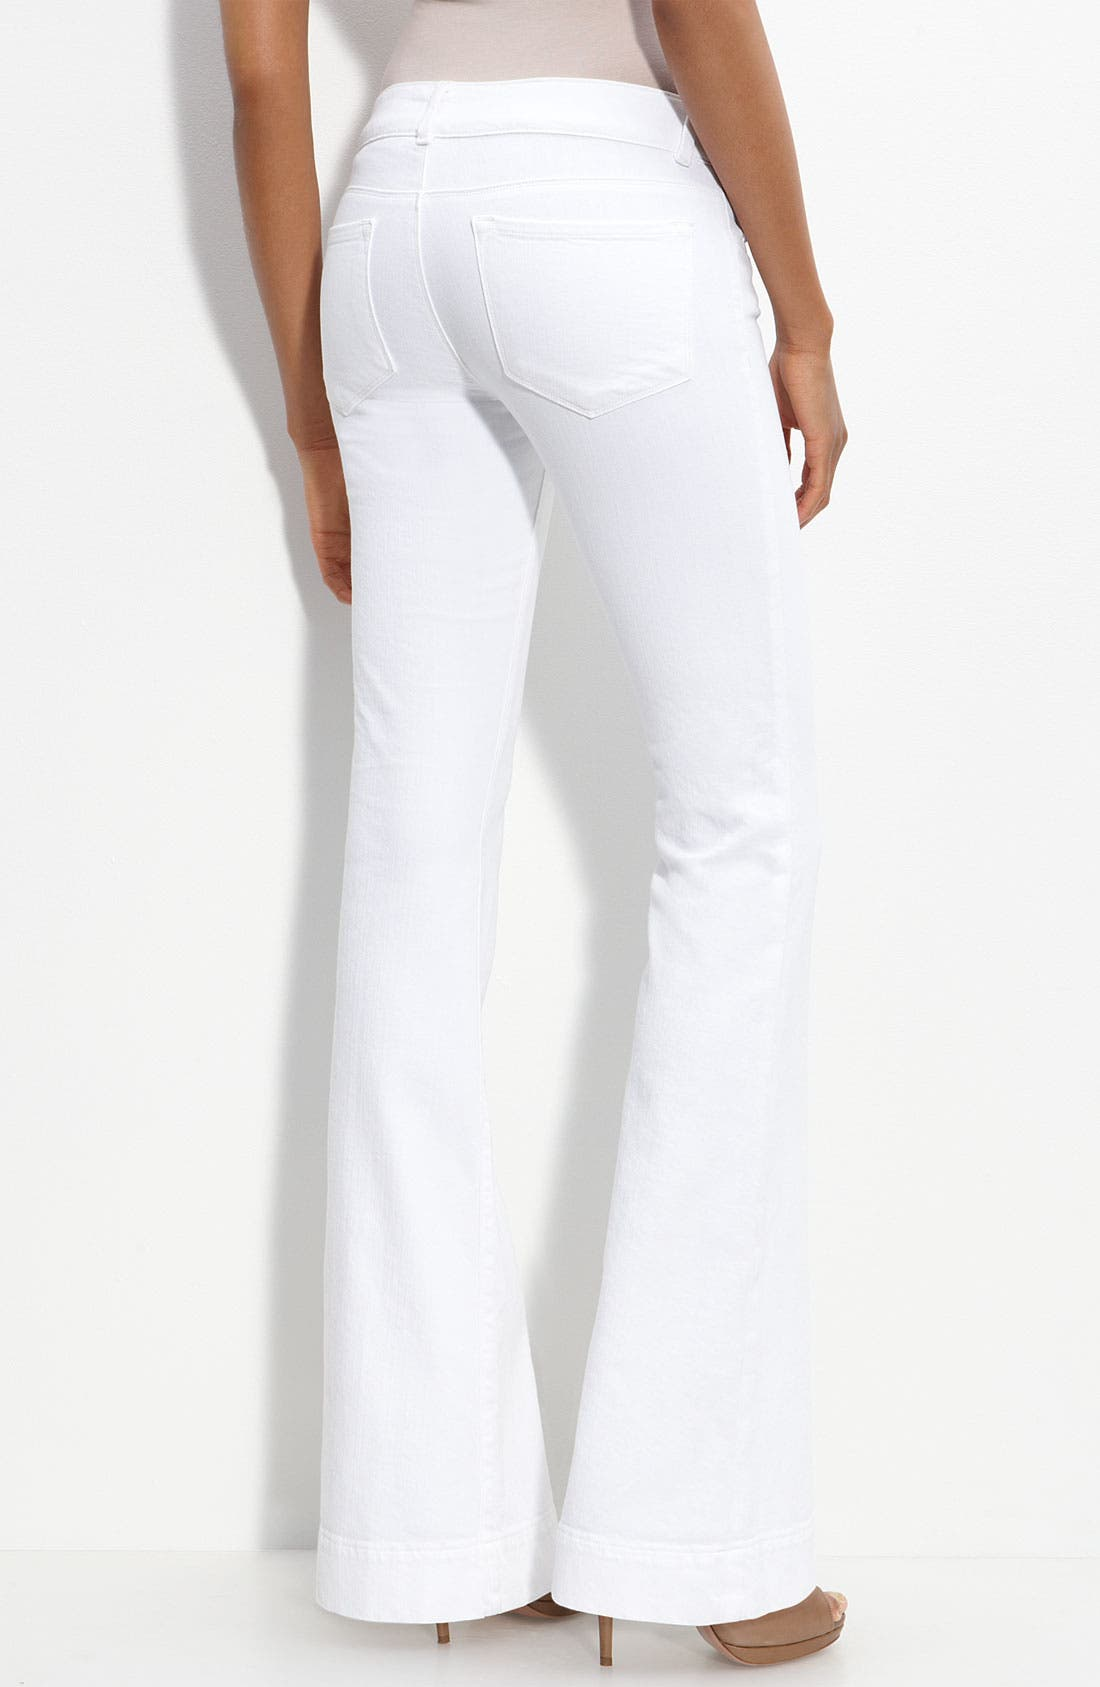 Alternate Image 1 Selected - J Brand 'Love Story' Flare Leg Stretch Jeans